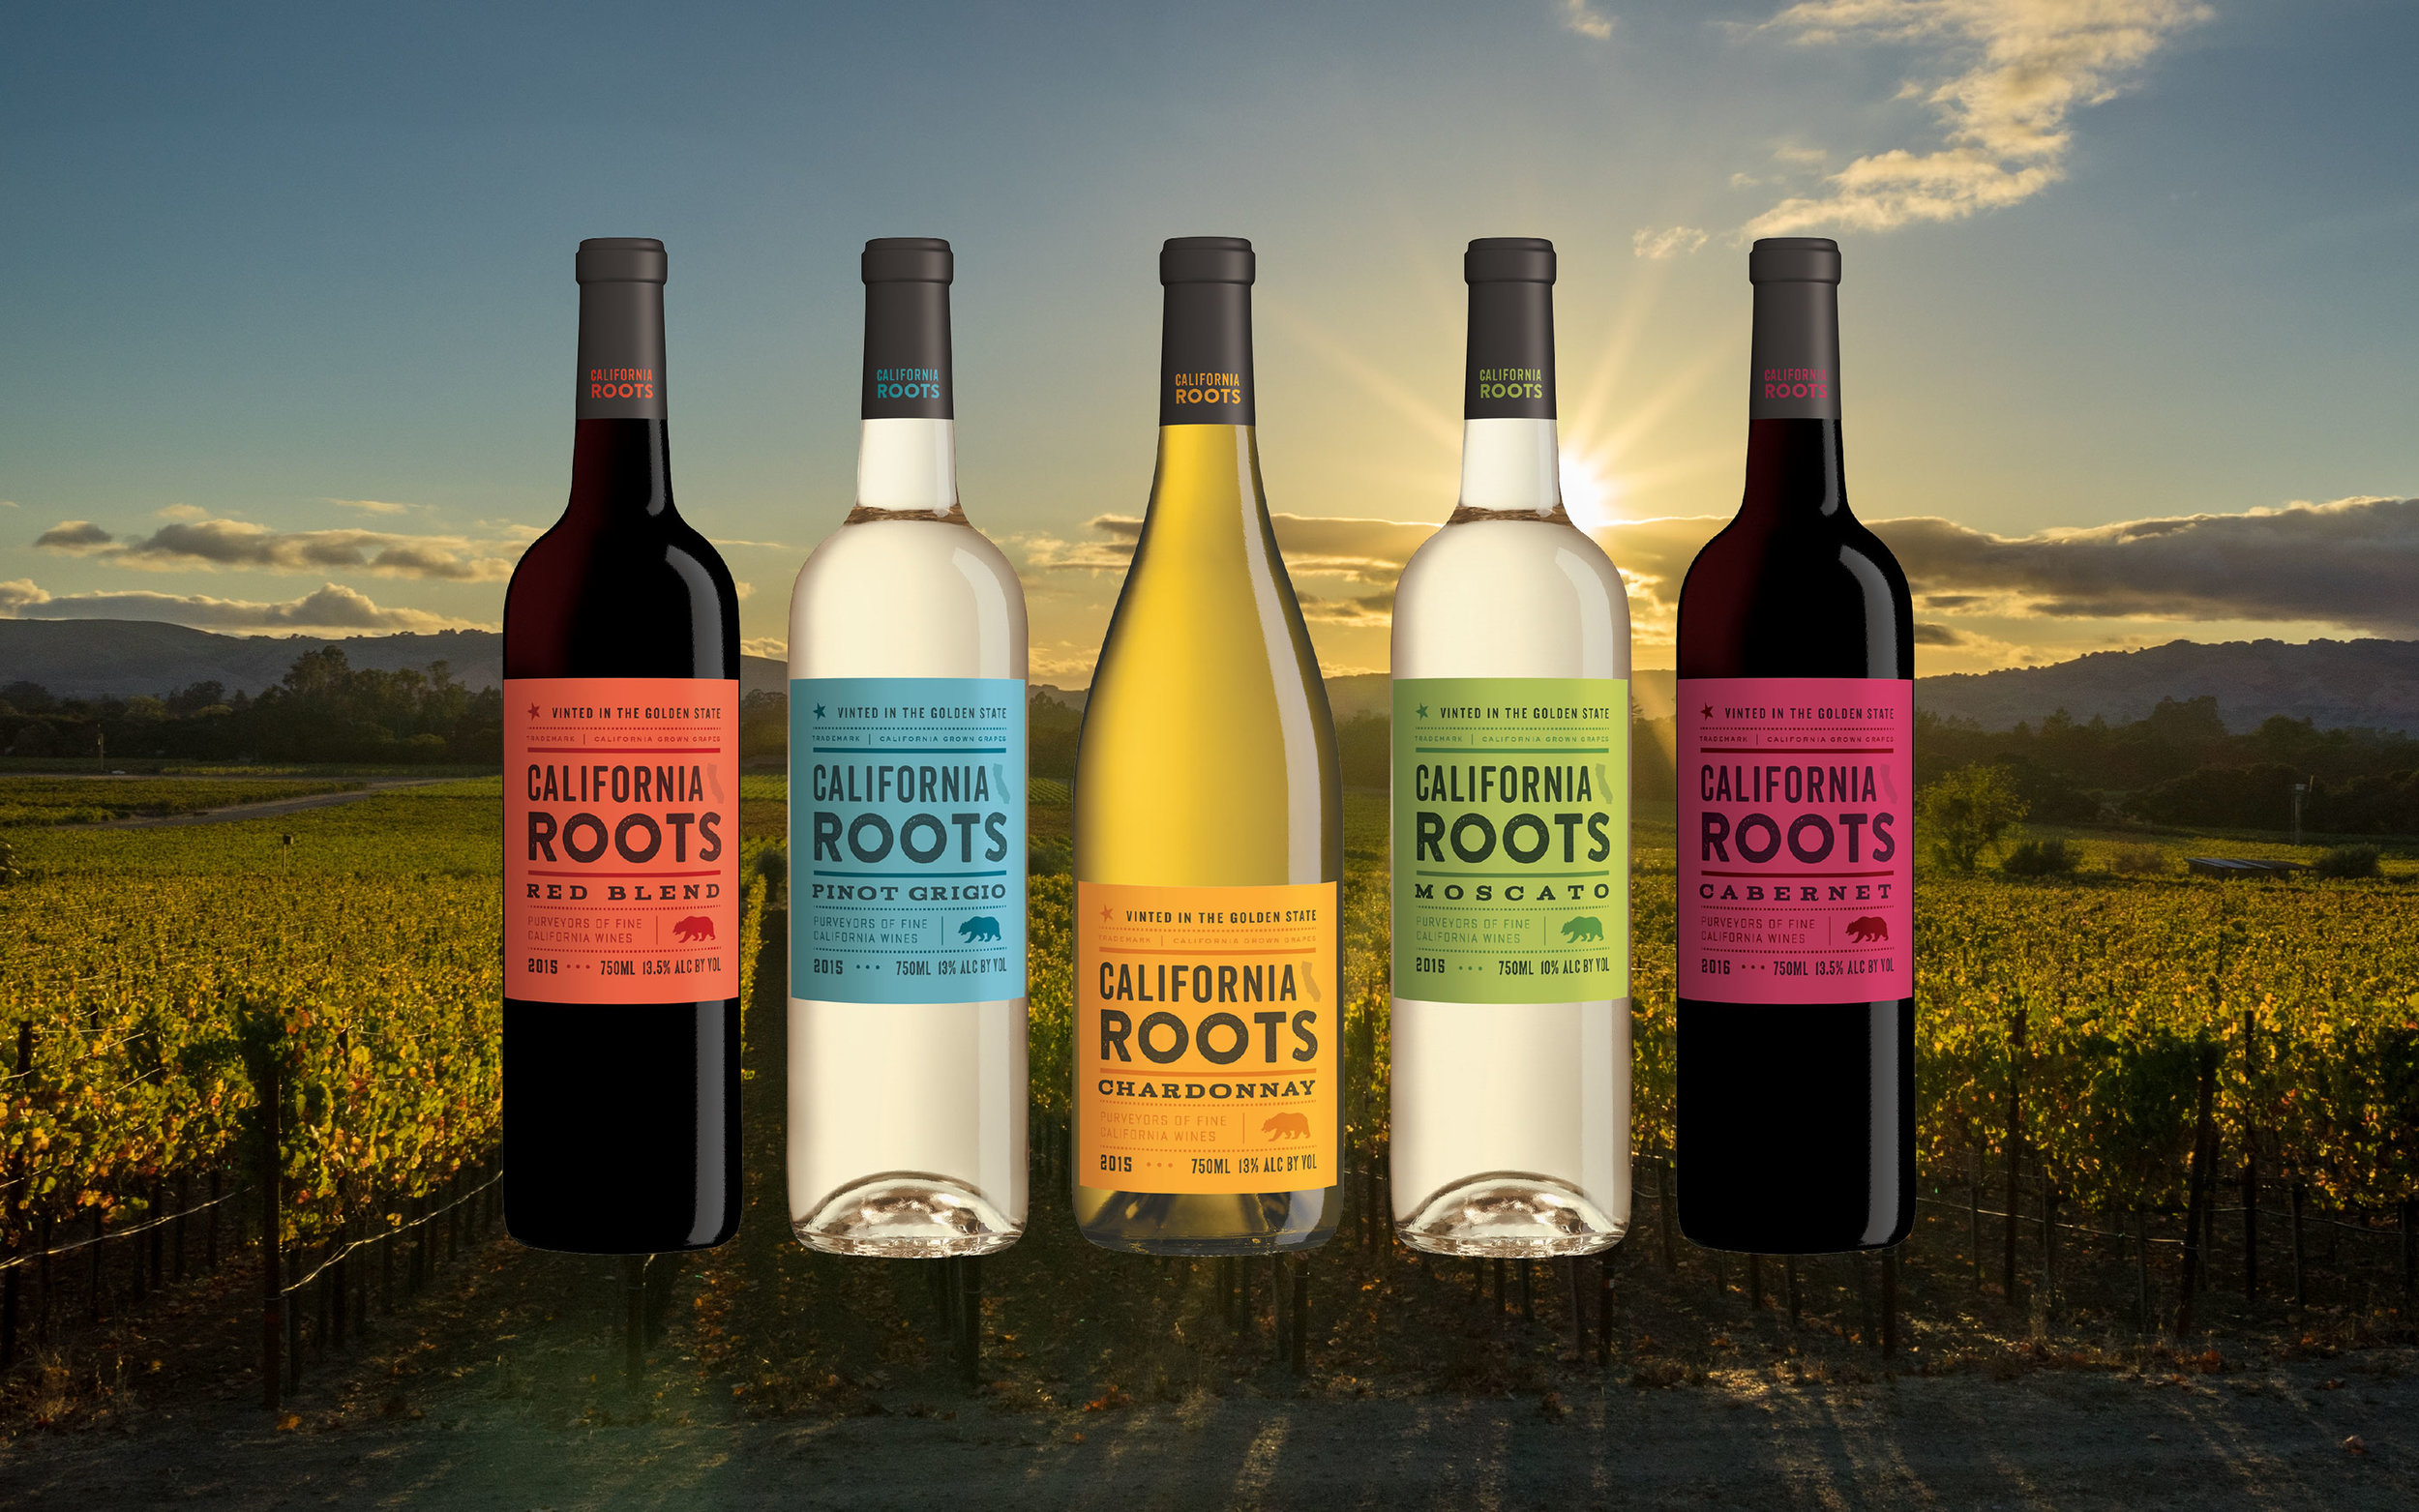 California Roots Wines